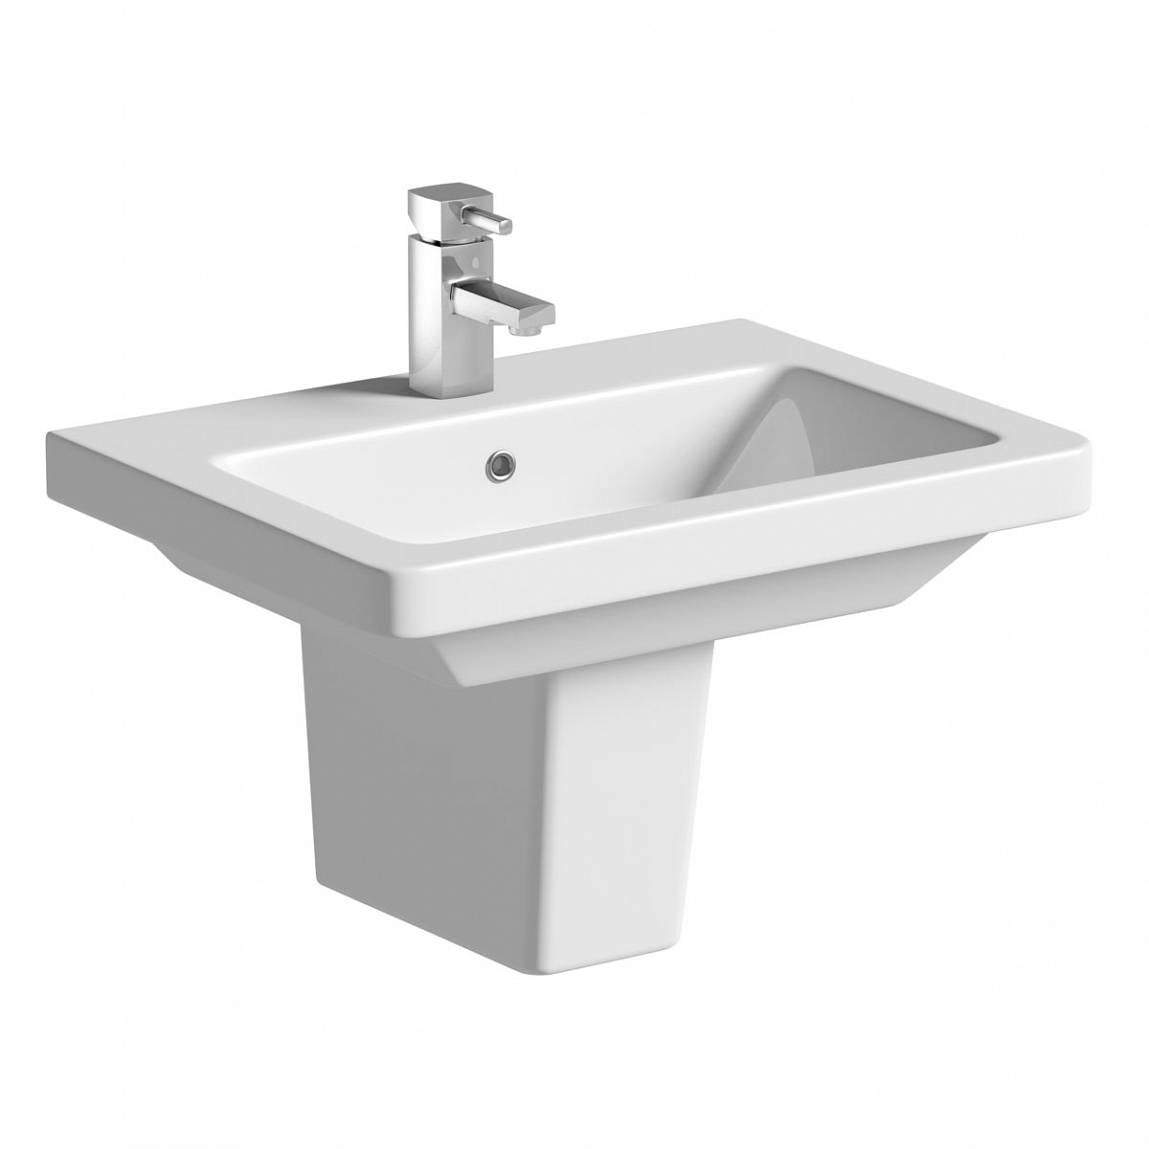 Mode Cooper 1 tap hole semi pedestal basin 600mm with waste